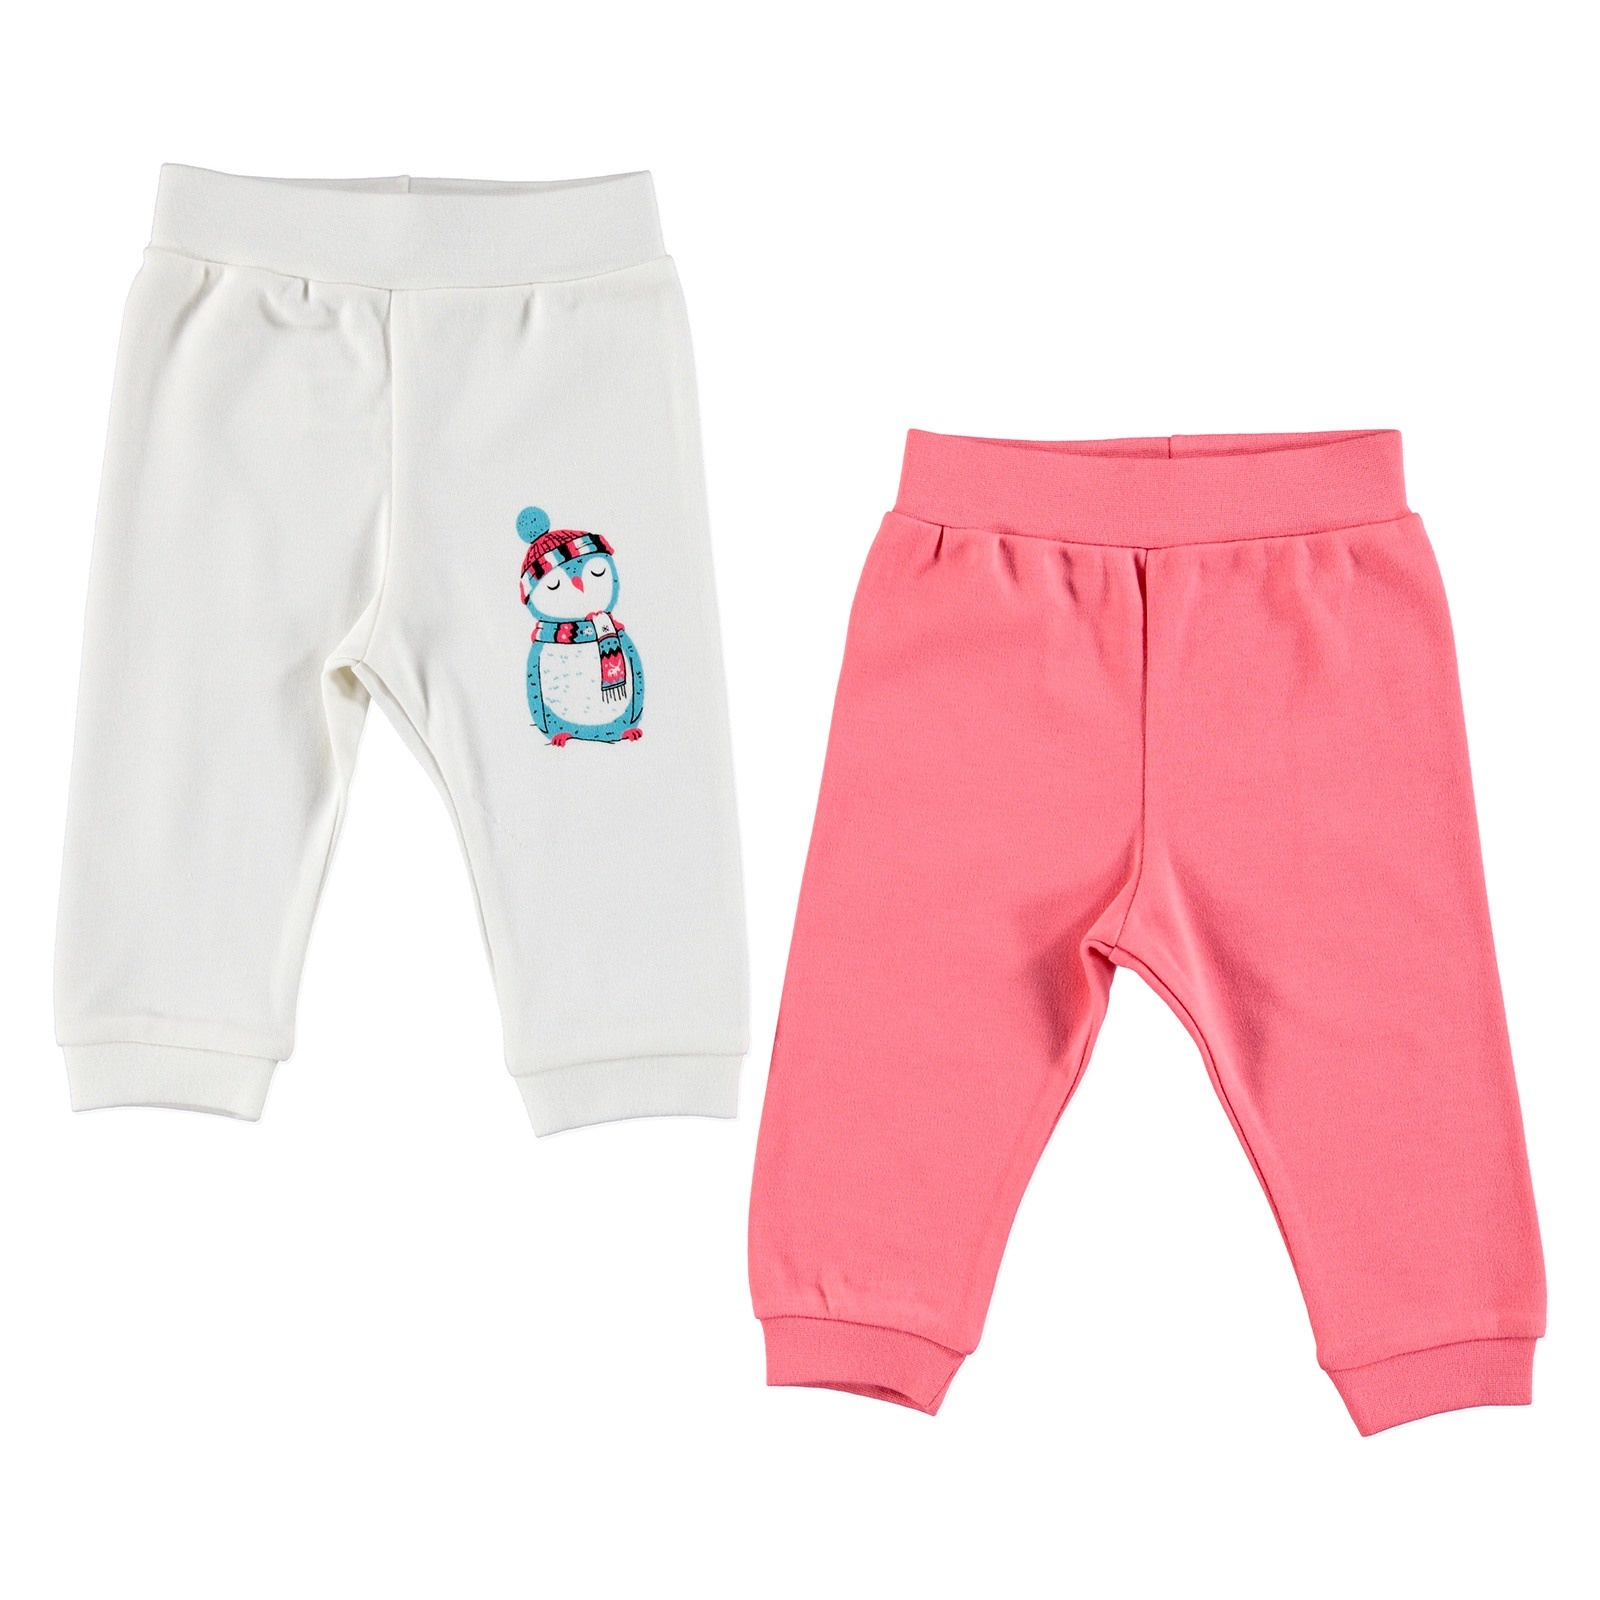 Ebebek HelloBaby Baby Footless Trousers 2 Pcs